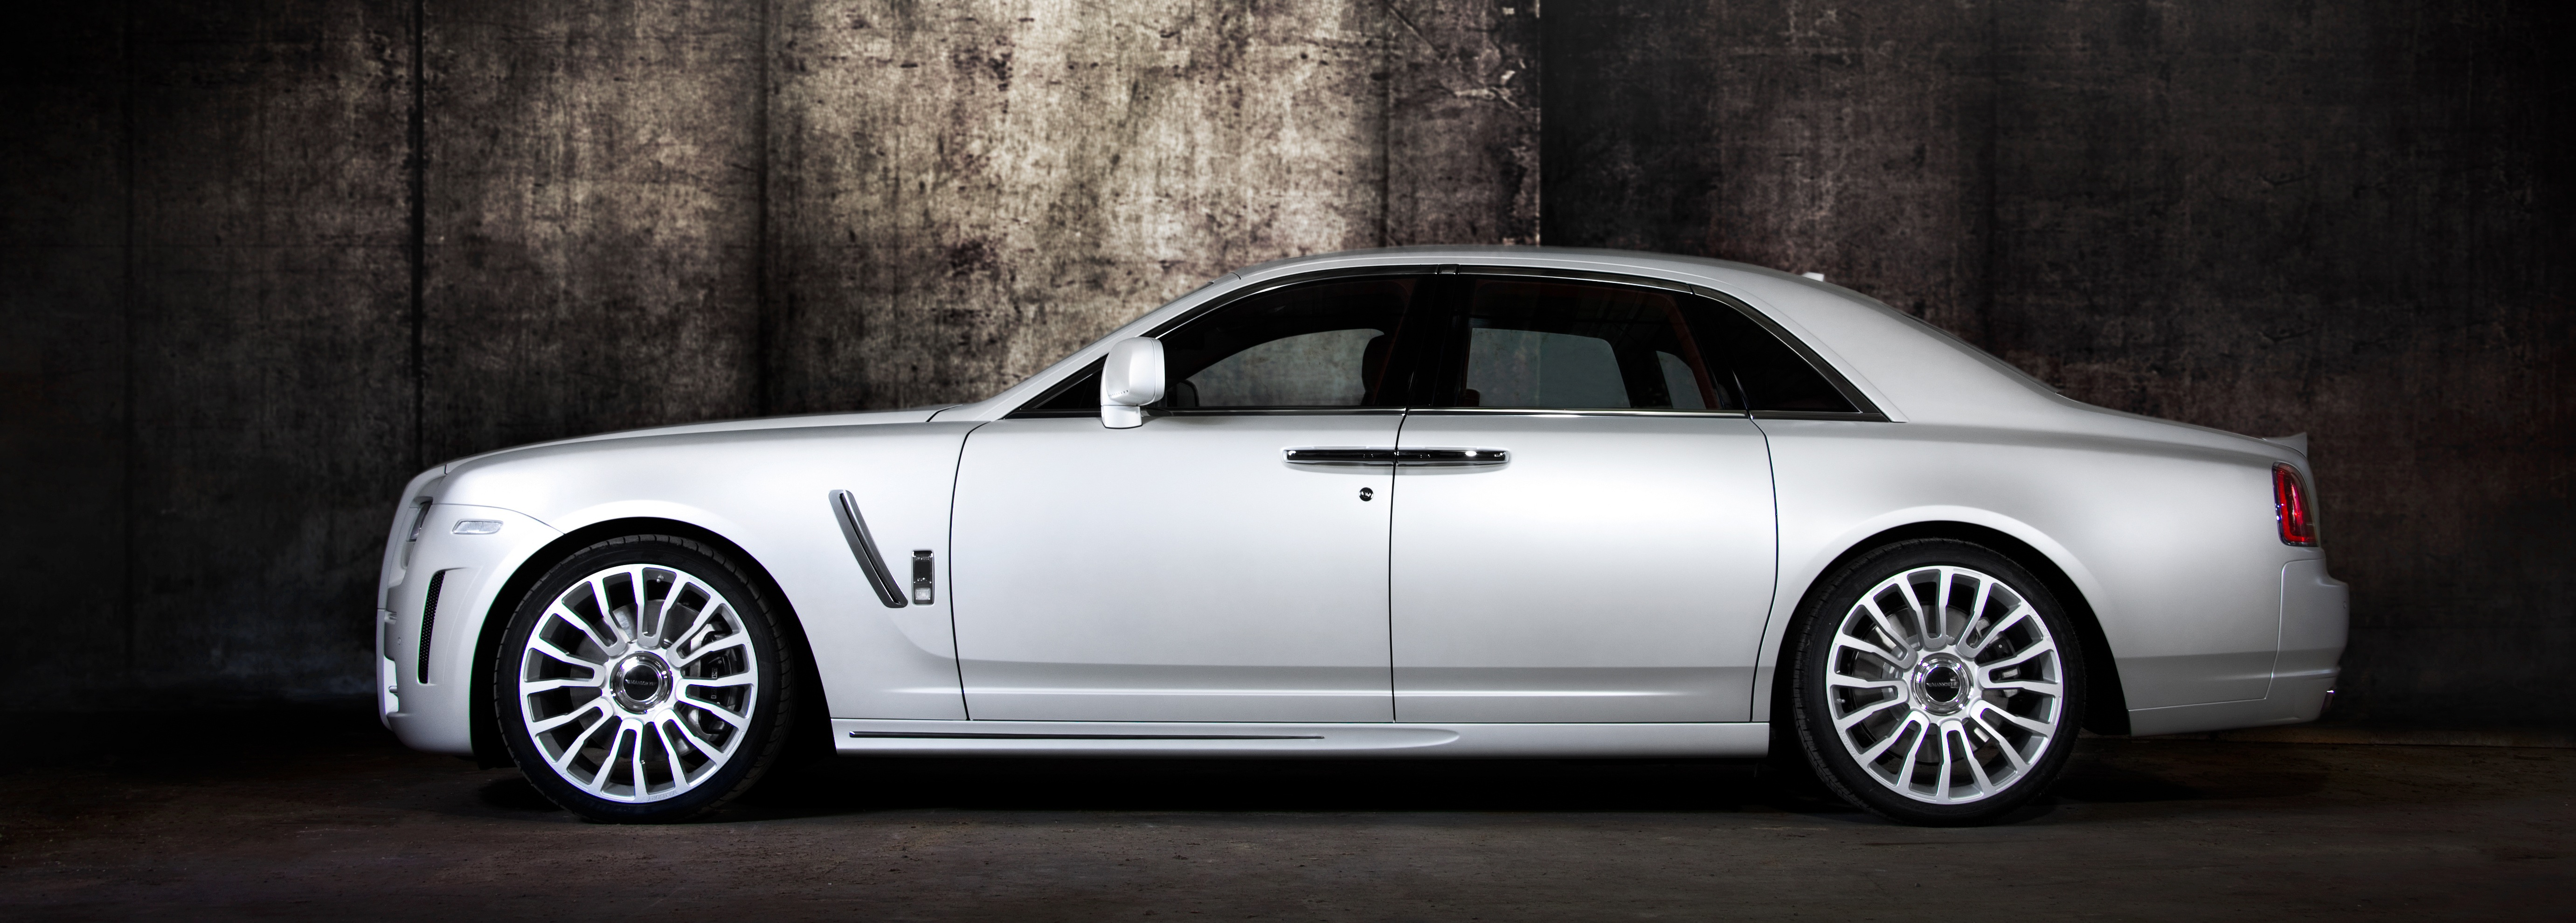 Ghost I Mansory